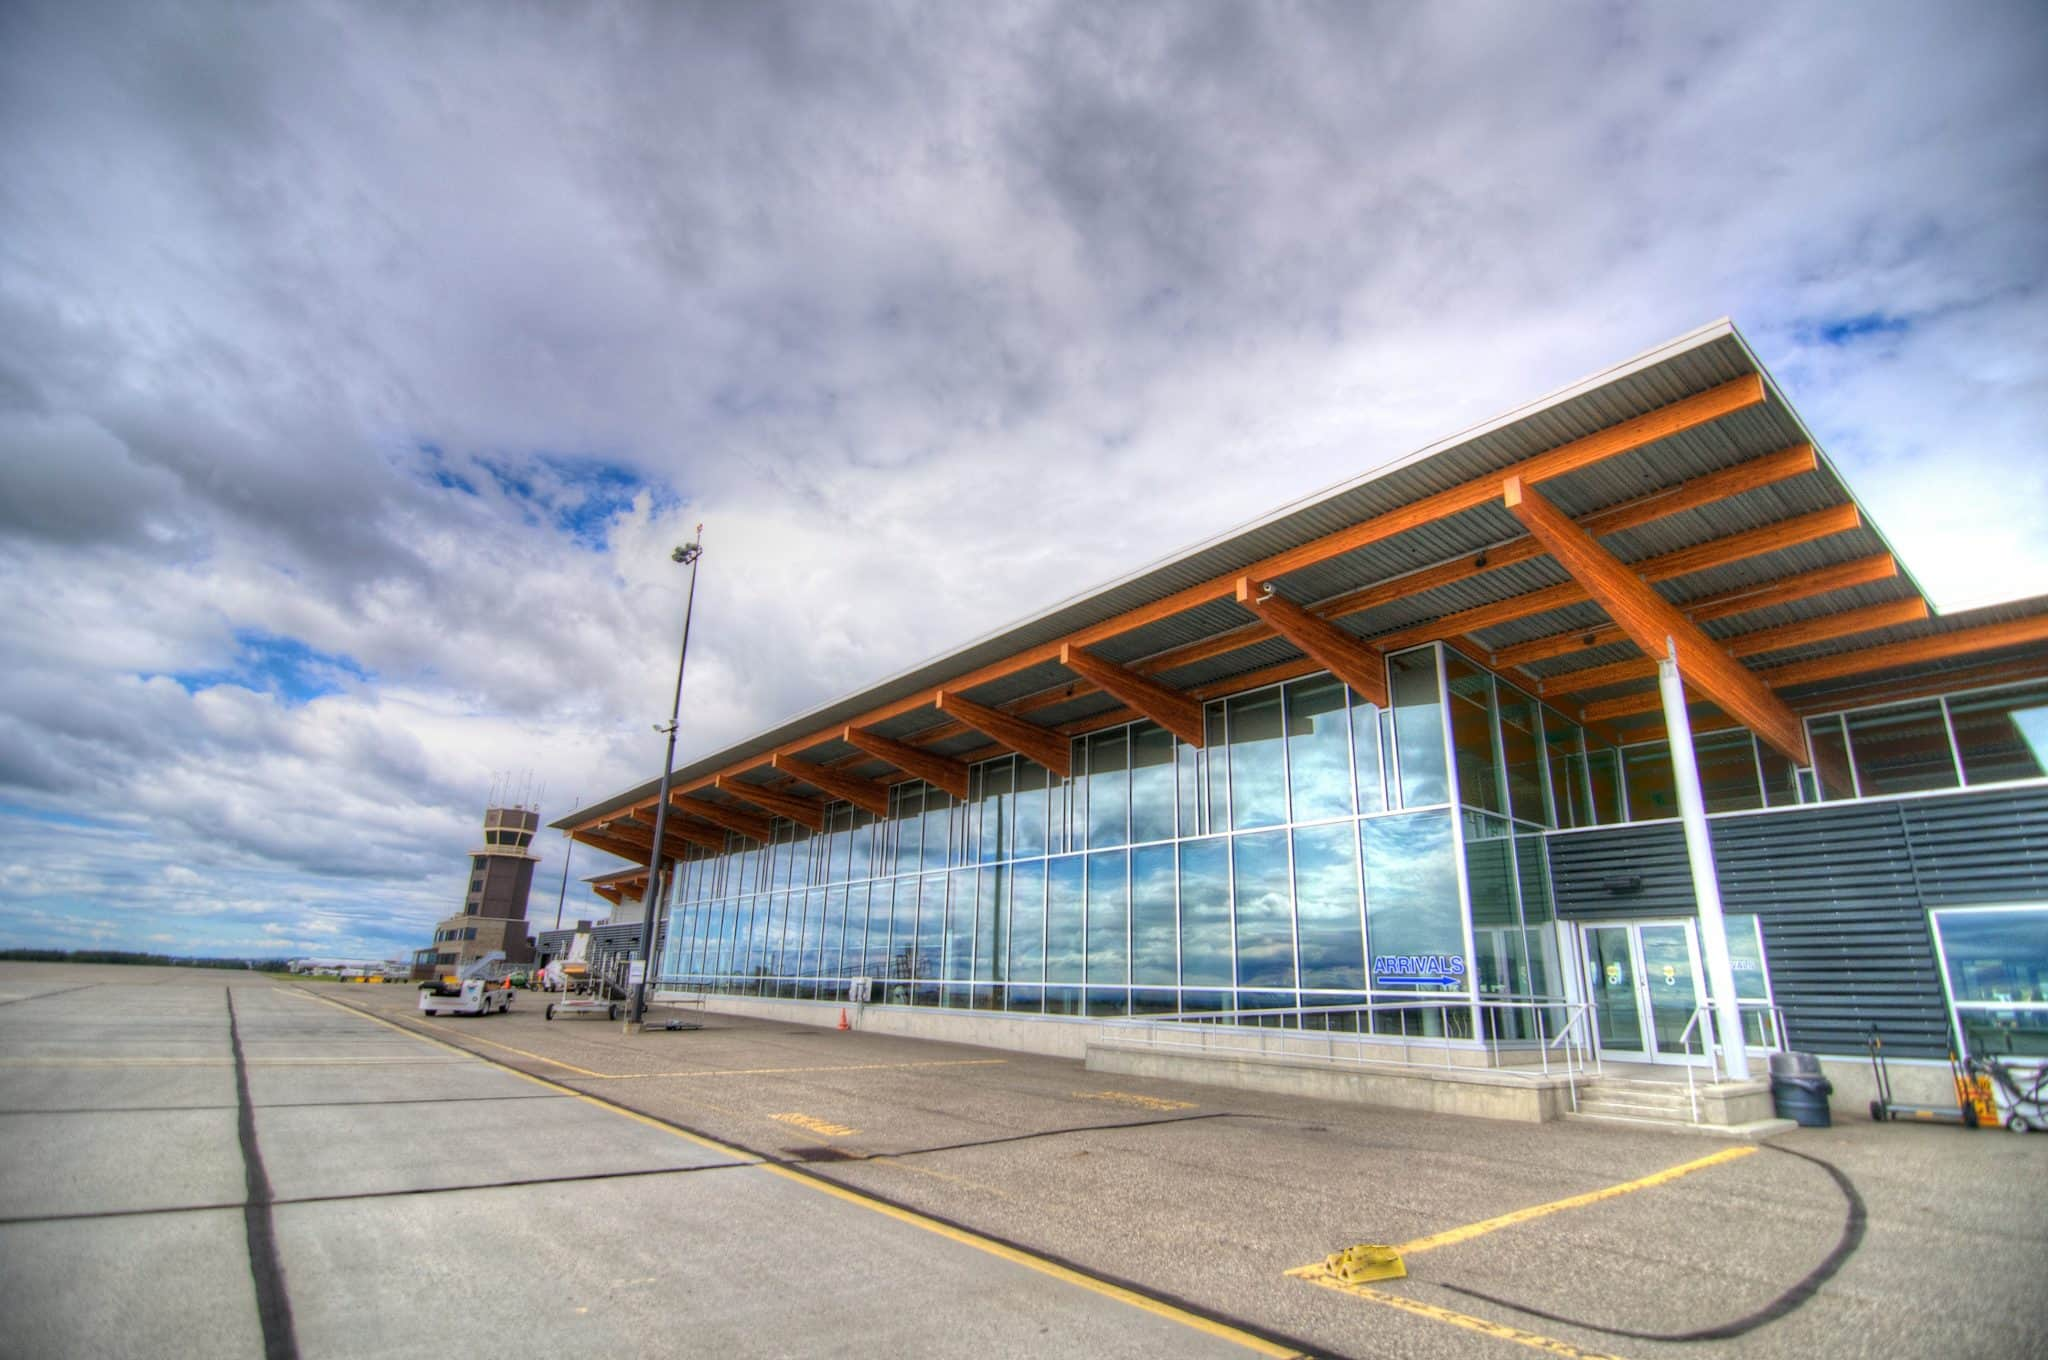 Blue apron edmonton - We Managed The Capital Development For A New Larger Sustainably Designed Terminal And Substantially Upgraded To The Airport S Apron And Taxiway